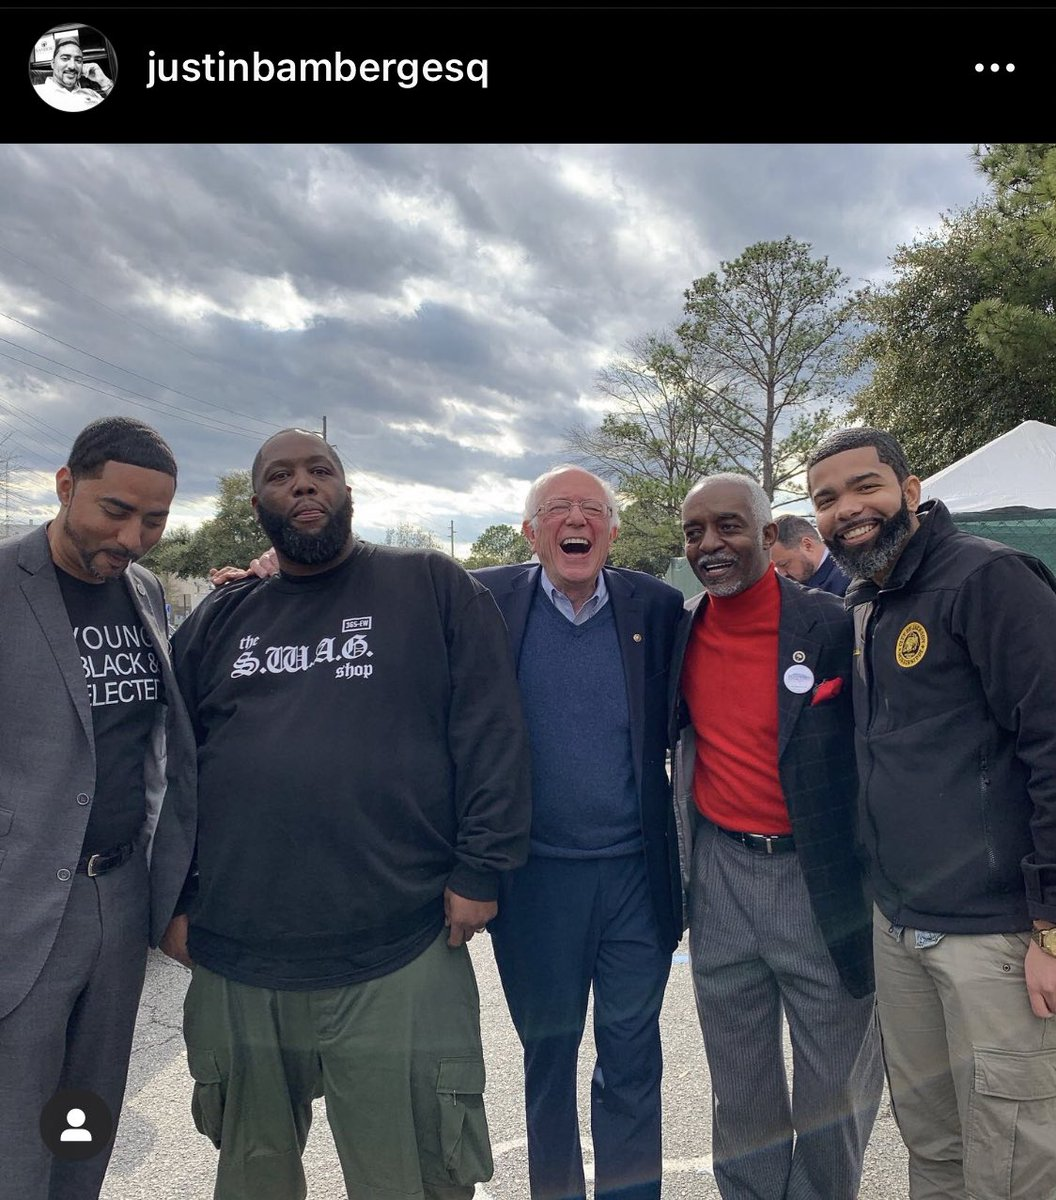 When folks was talking mad trash but now you are the US Senate Finance Chair and control the 💰decisions in America. 🤣🤣🤣🇺🇸 Shoutout to our brother @BernieSanders for always fighting the good fight for the people. 💪🏽 https://t.co/ypVN6Anm5c